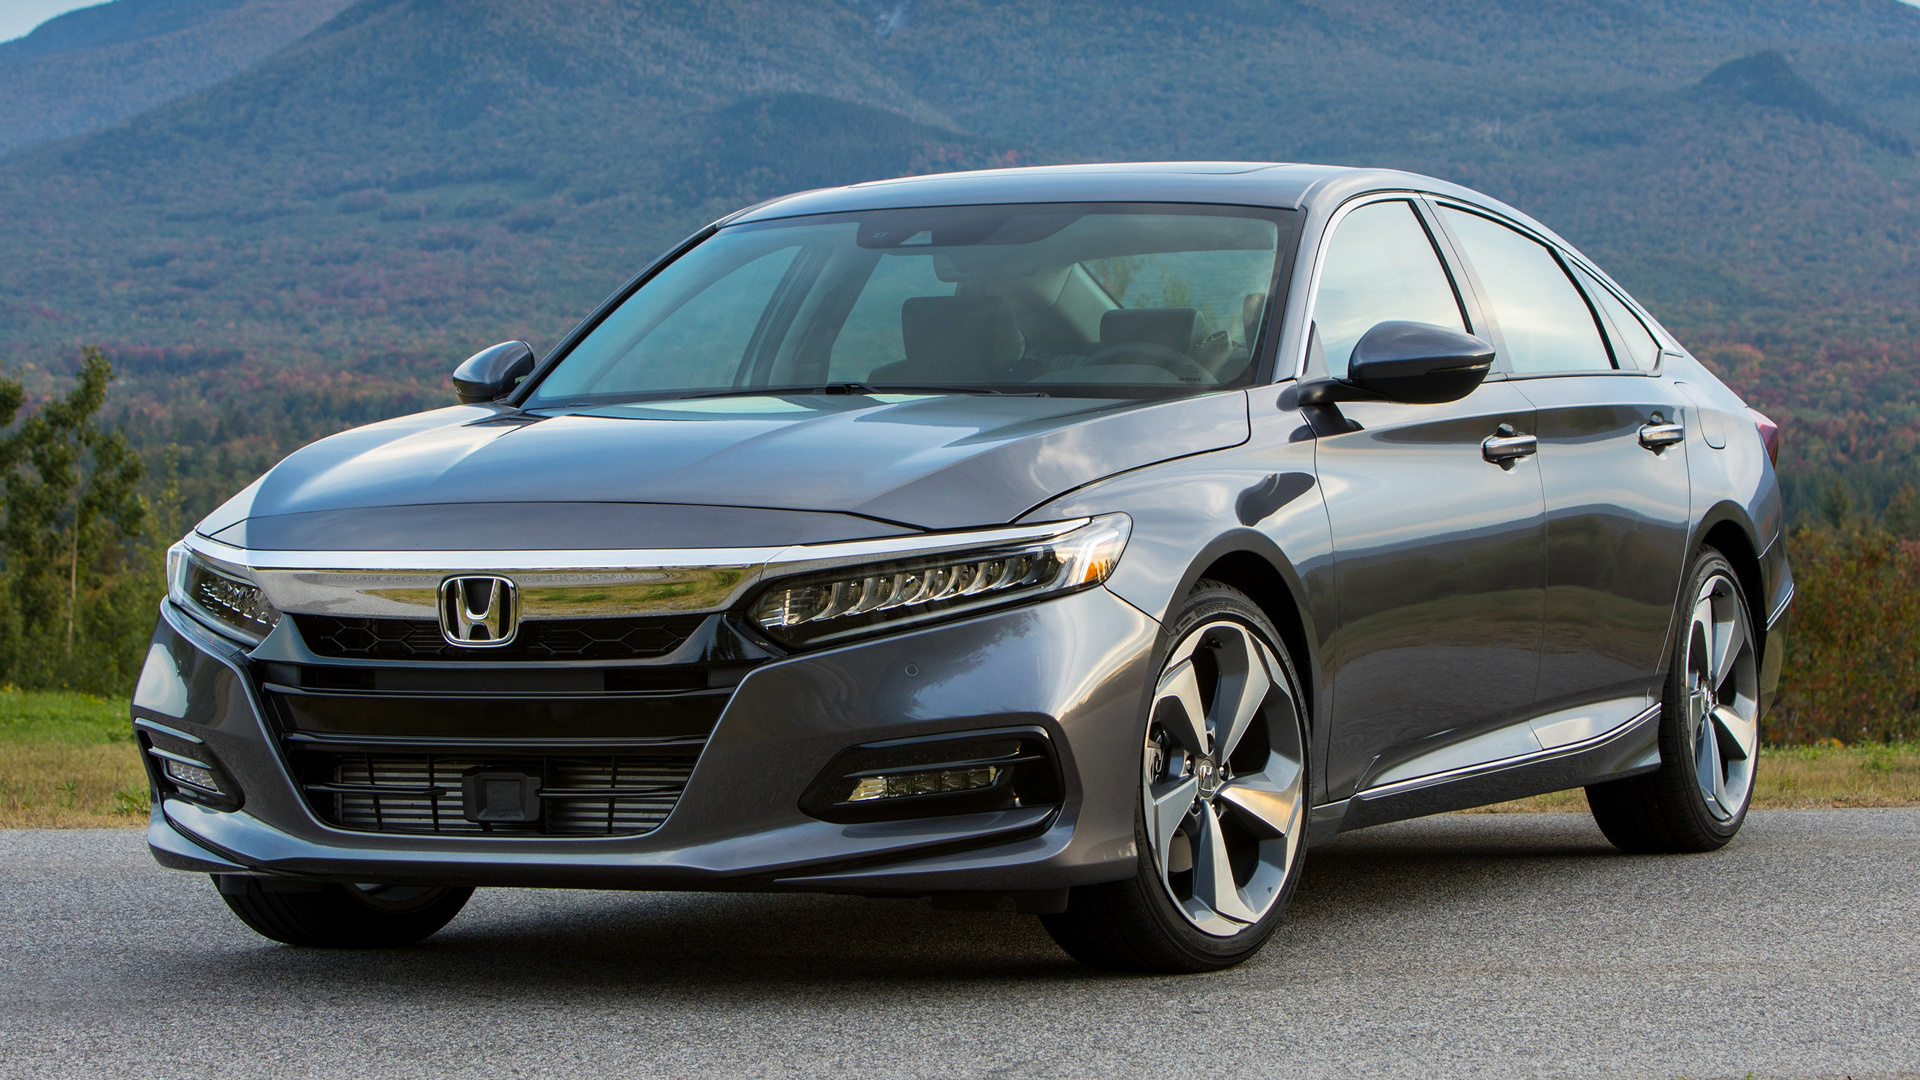 2018 Honda Accord Touring Wallpapers And Hd Images Car